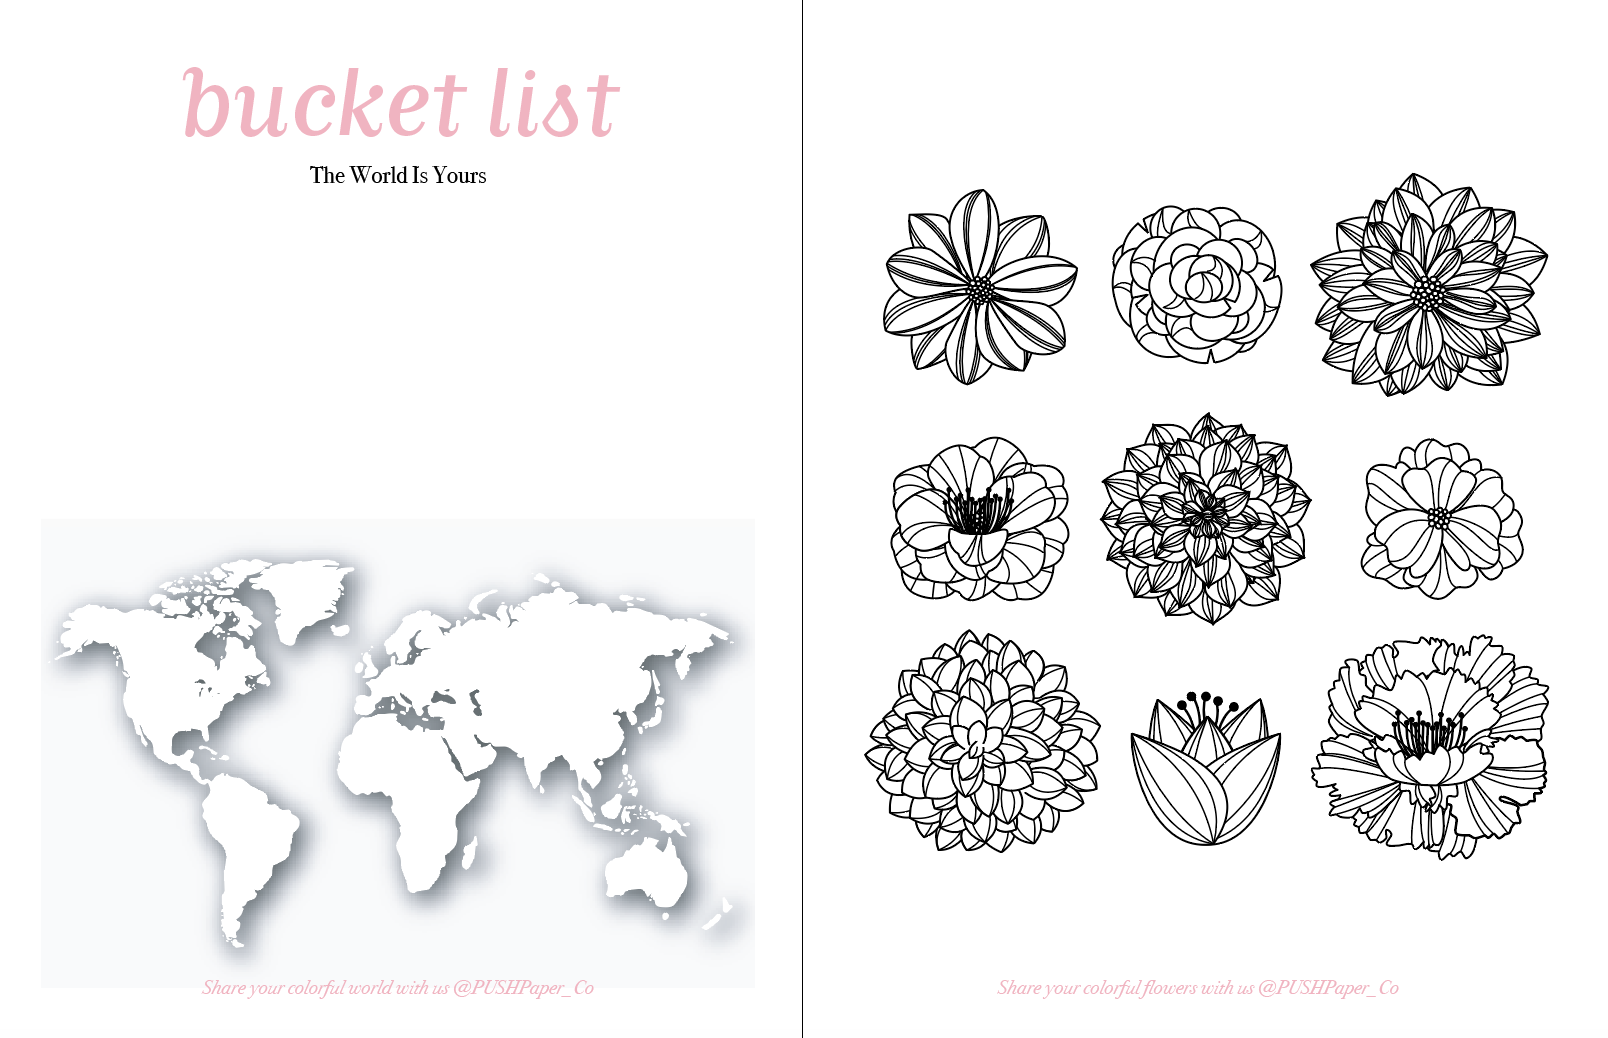 De-stress using our fun pages to write out your bucket list and color the map. Design a beautiful bouquet and share them with us @PUSHPaper_Co!